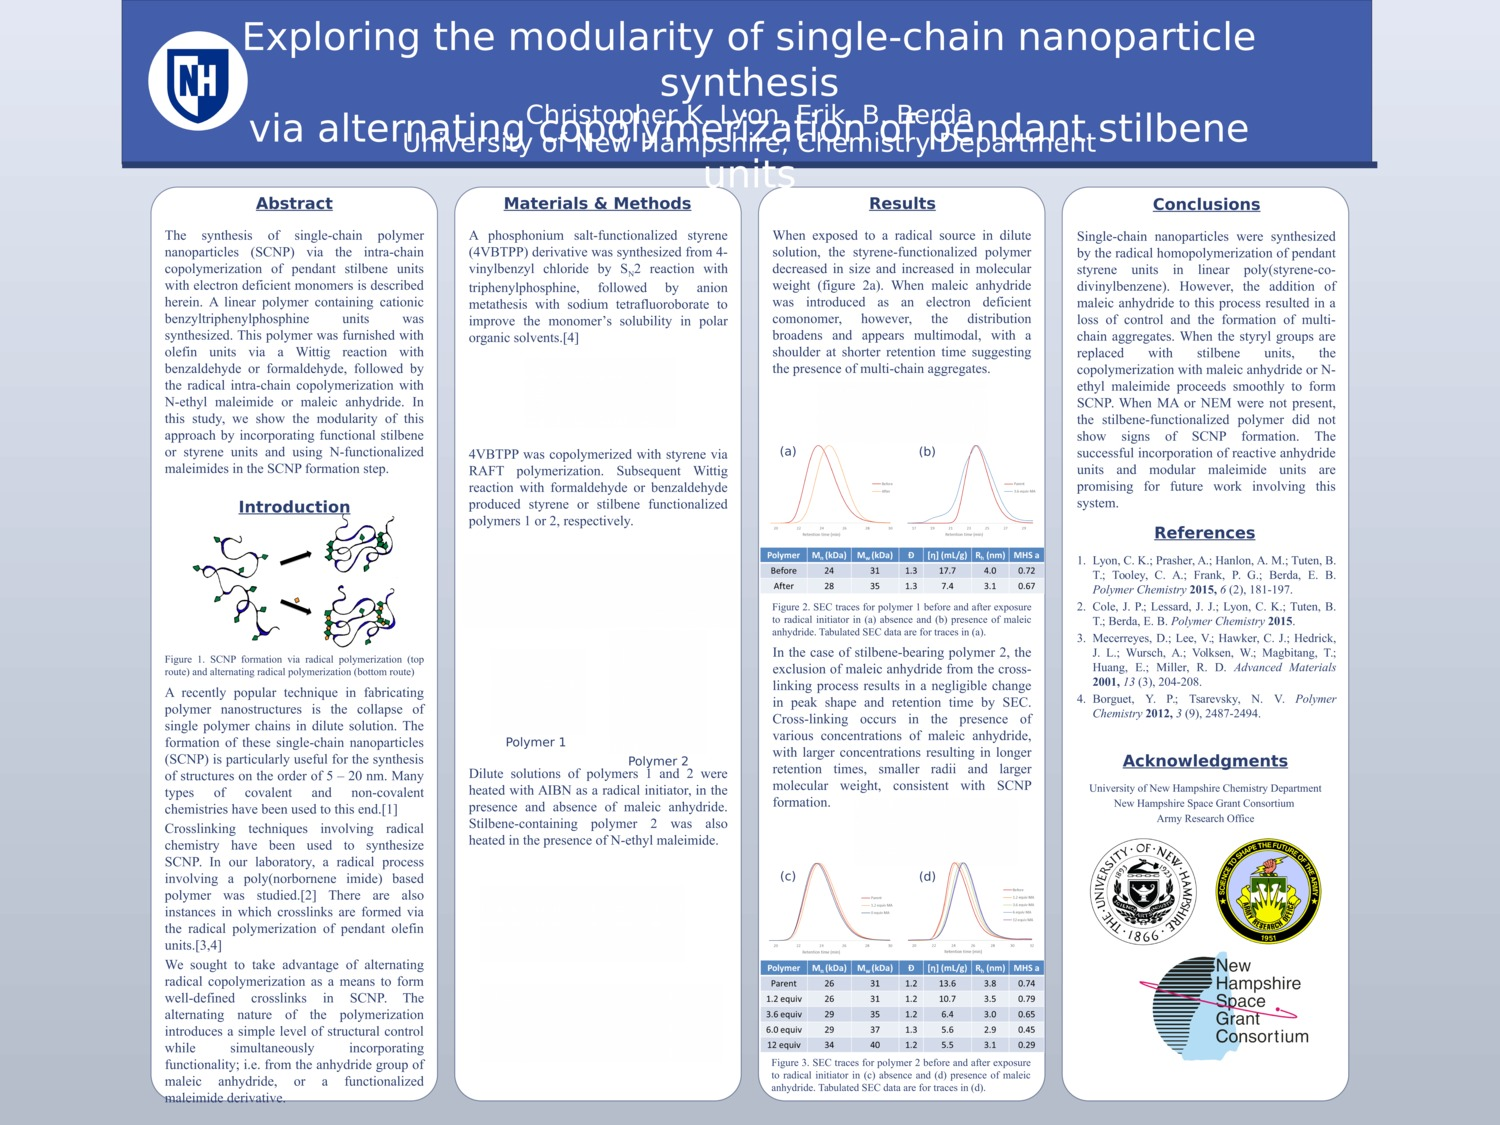 Exploring The Modularity Of Single-Chain Nanoparticle Synthesis Via Alternating Copolymerization Of Pendant Stilbene Units by ckq35